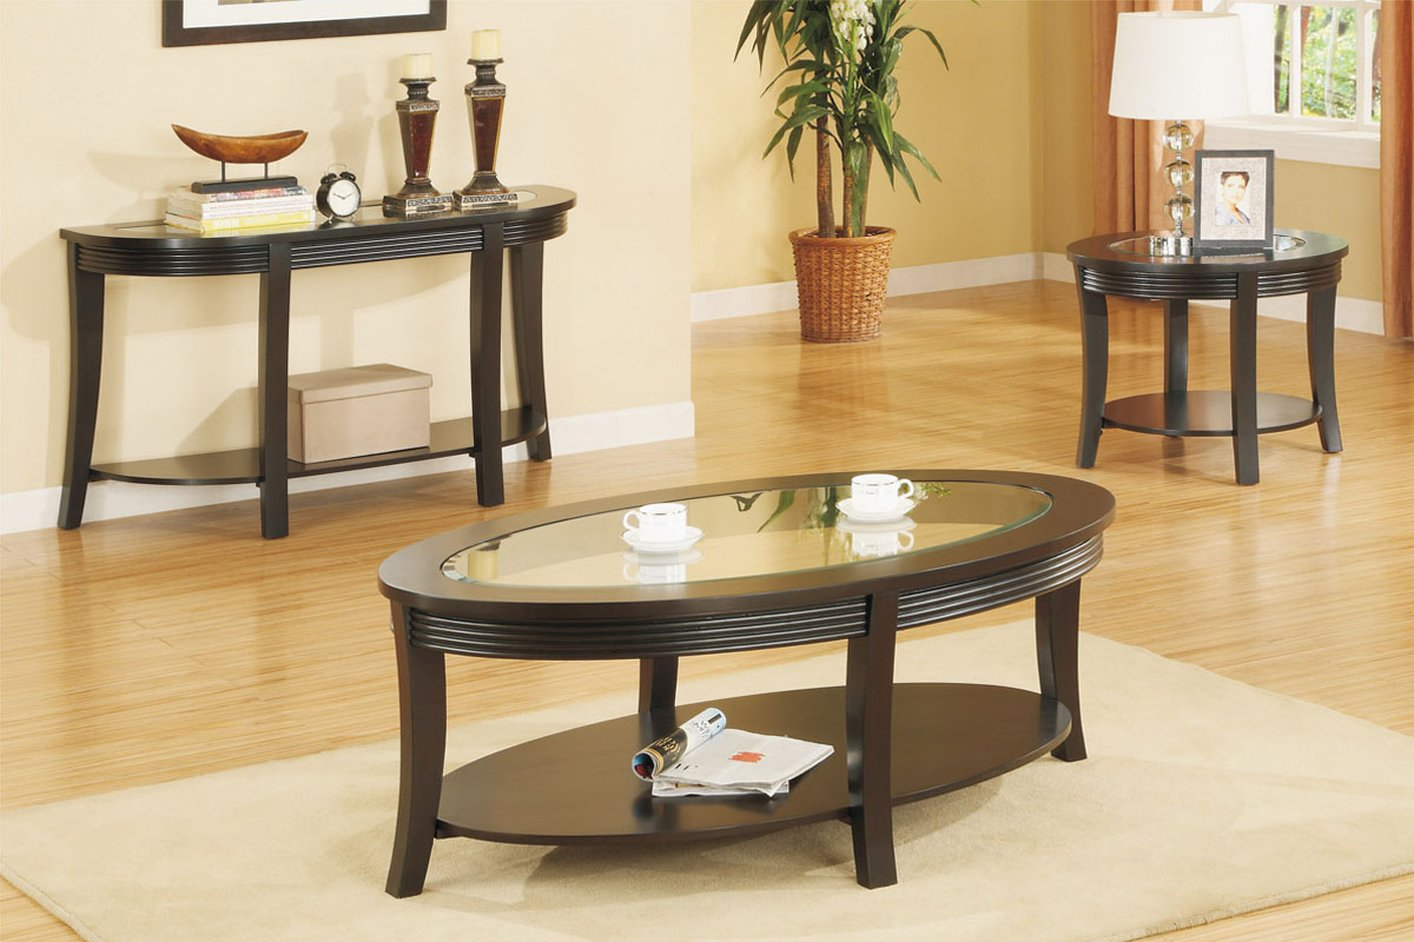 Poundex F6102 Brown Glass Coffee Table Steal A Sofa Furniture Outlet Los Angeles Ca